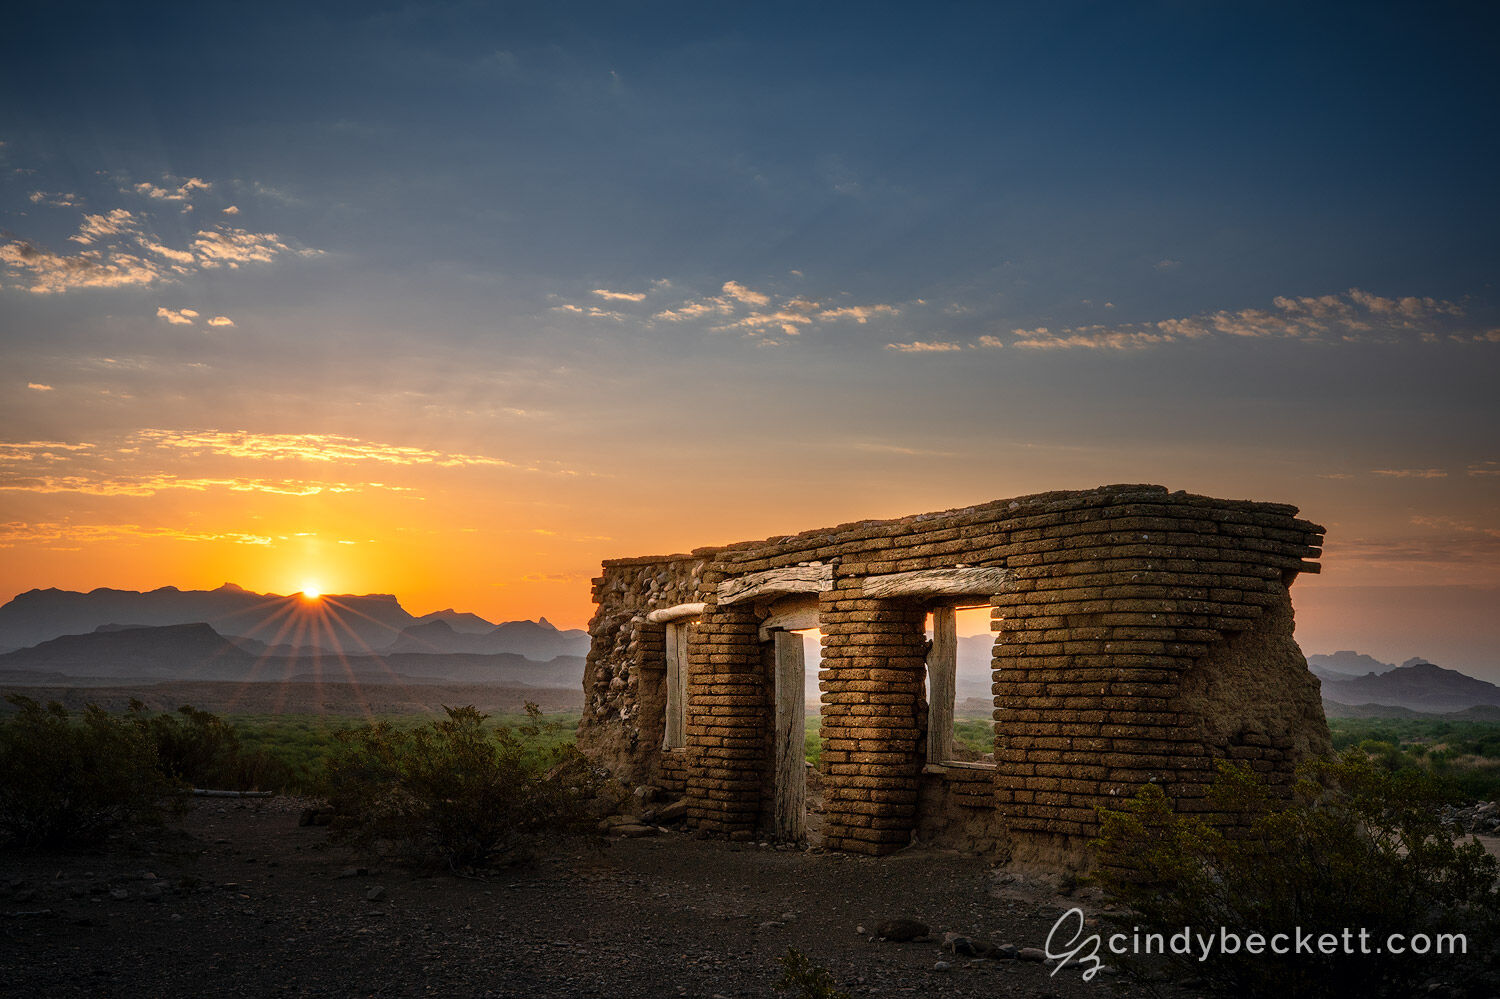 The sun rises over the distant mountains of the Chisos Basin area with the historic adobe structure known as Dorgan farm sitting on the foreground mesa.